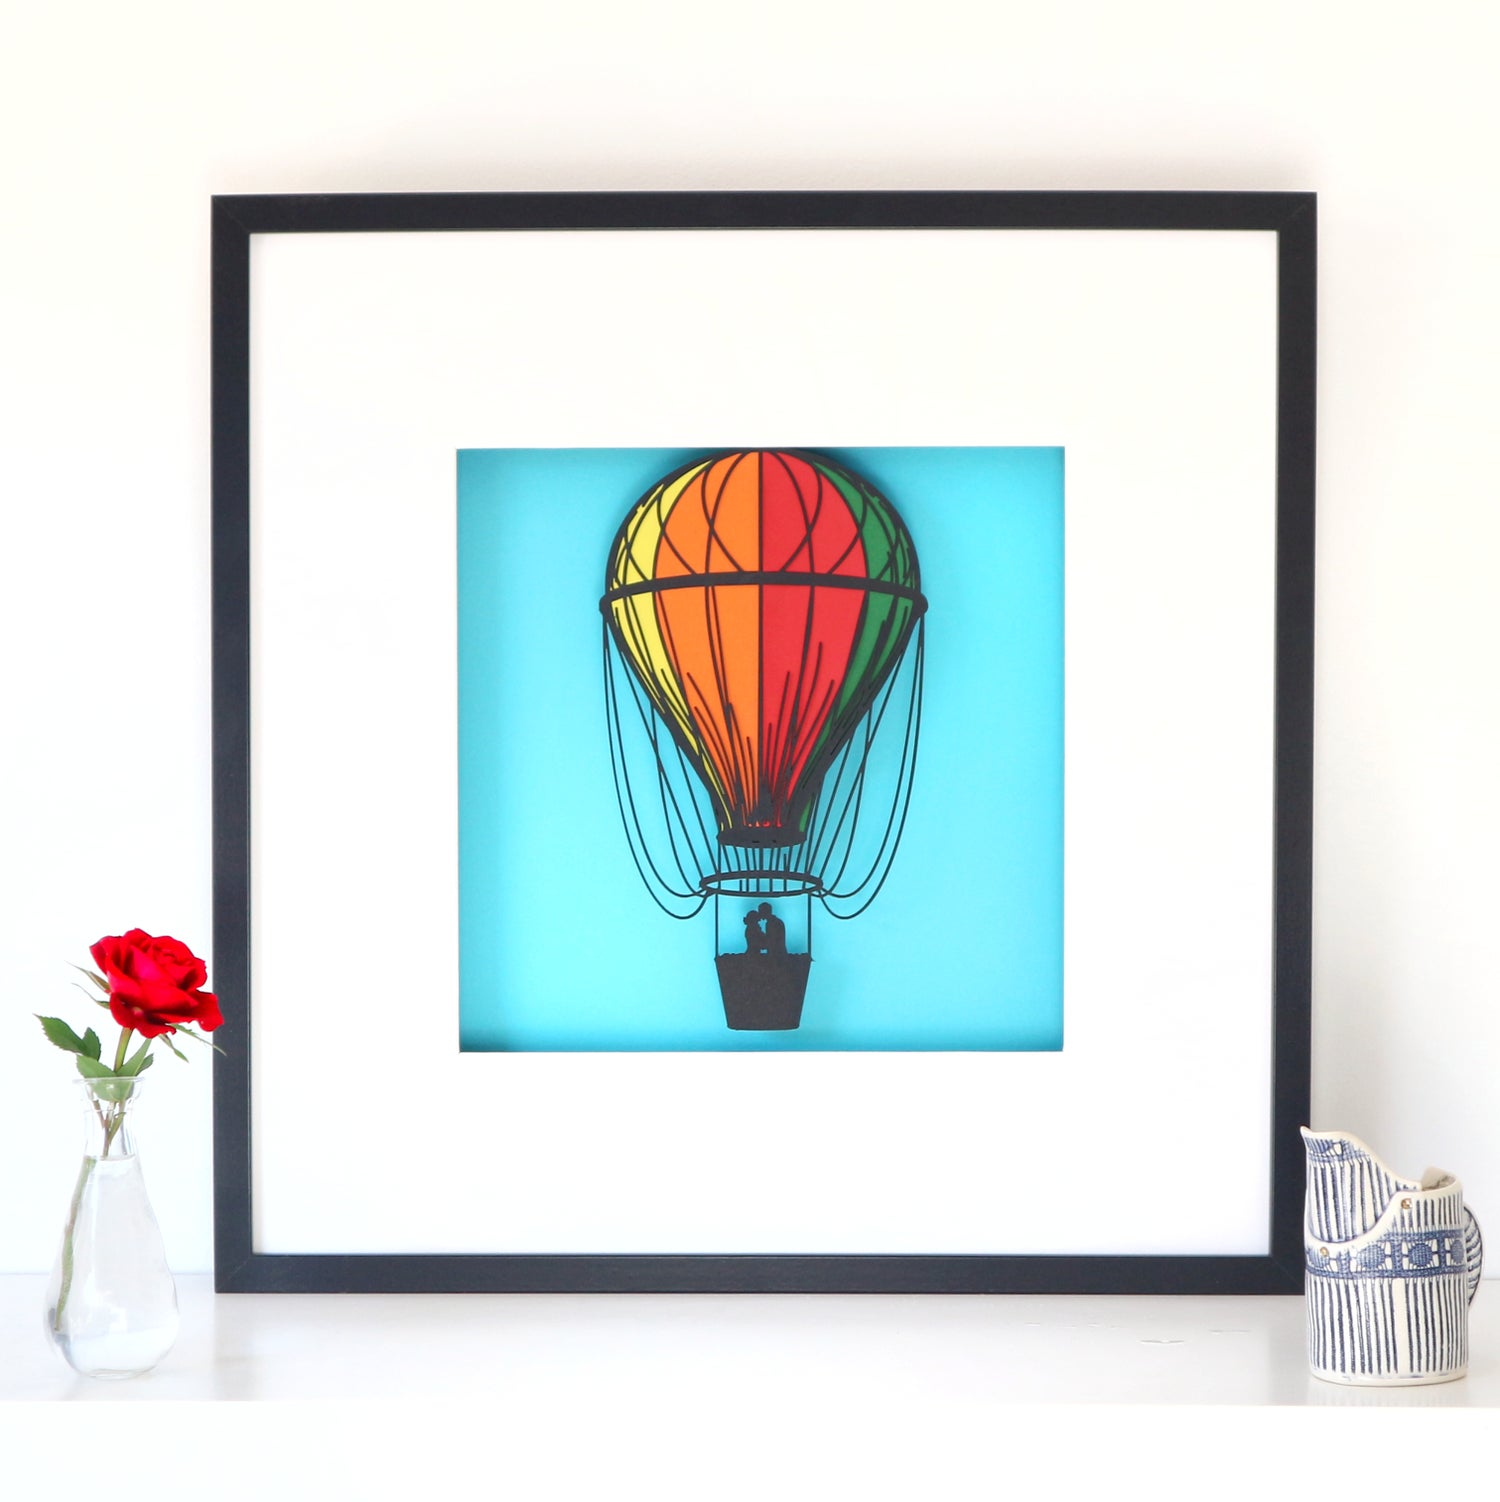 Image of Hot Air Balloon - Large Framed Papercut Picture